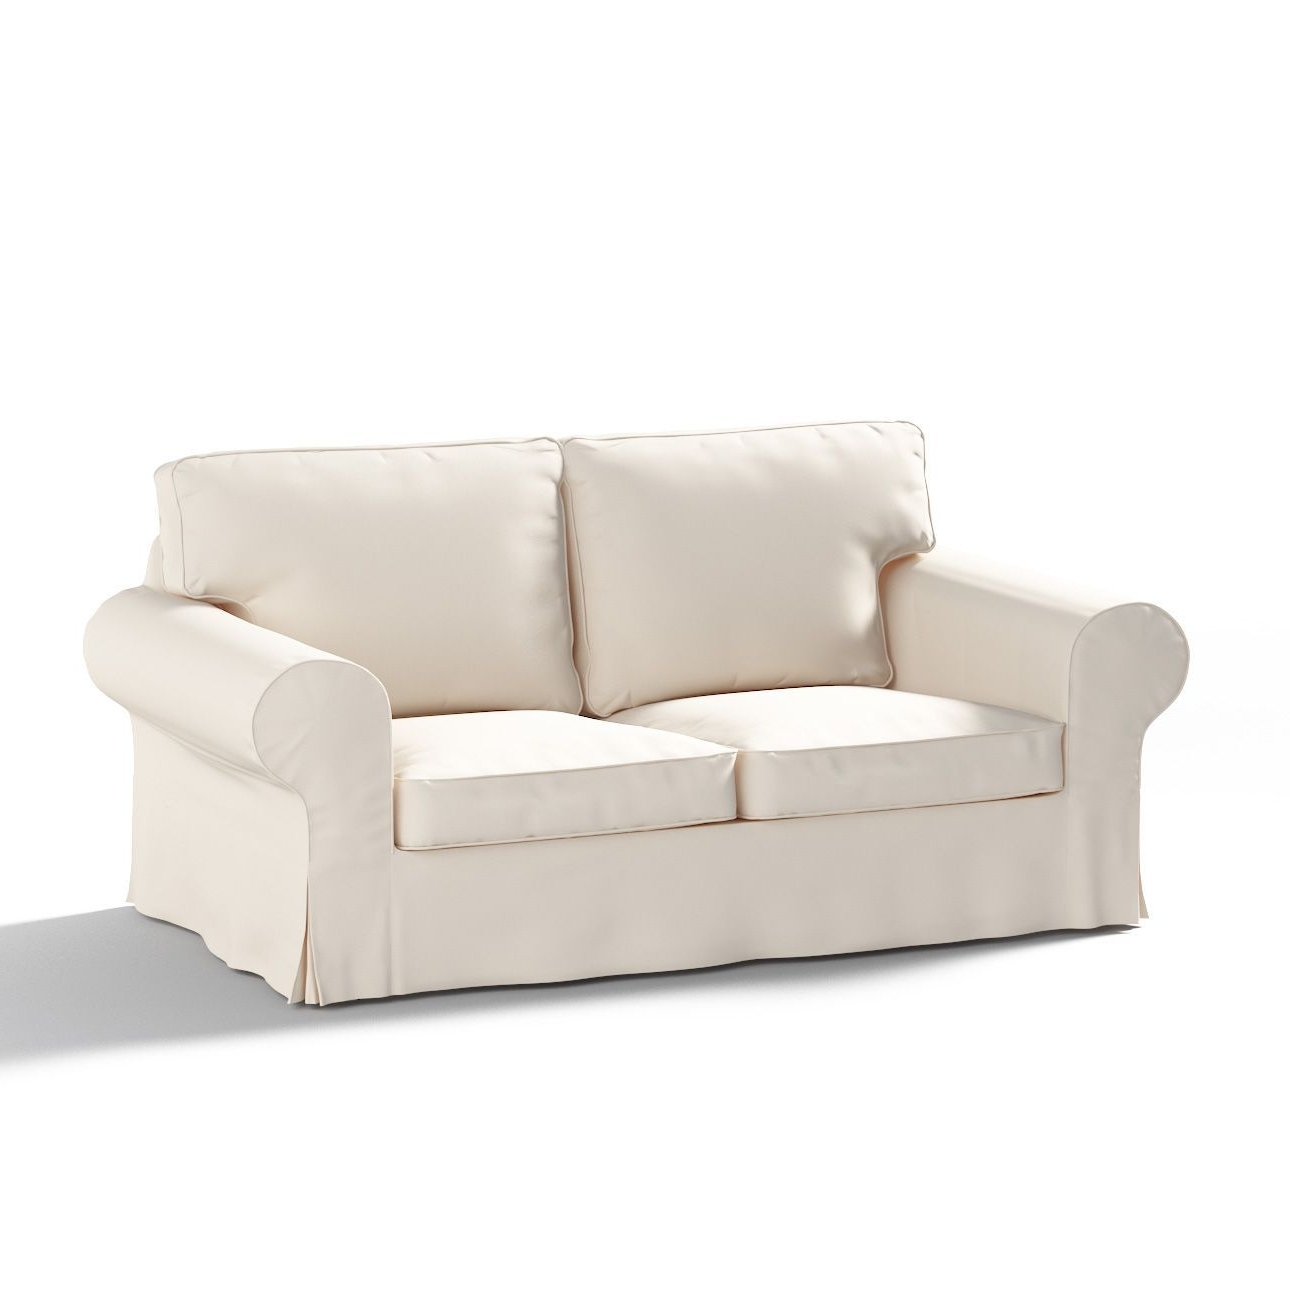 Sofas With Washable Covers In Most Popular Home Reserve Sectional Review Sofas With Removable Washable Covers (View 8 of 15)